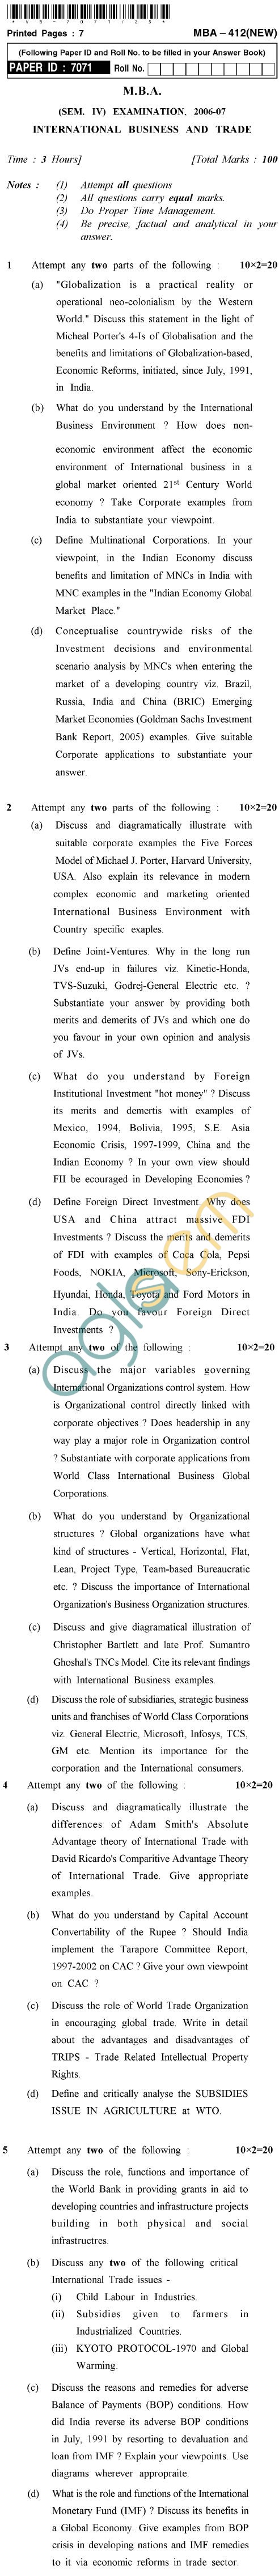 UPTU M.B.A. Question Papers - MBA-412 (New)-International Business and Trade